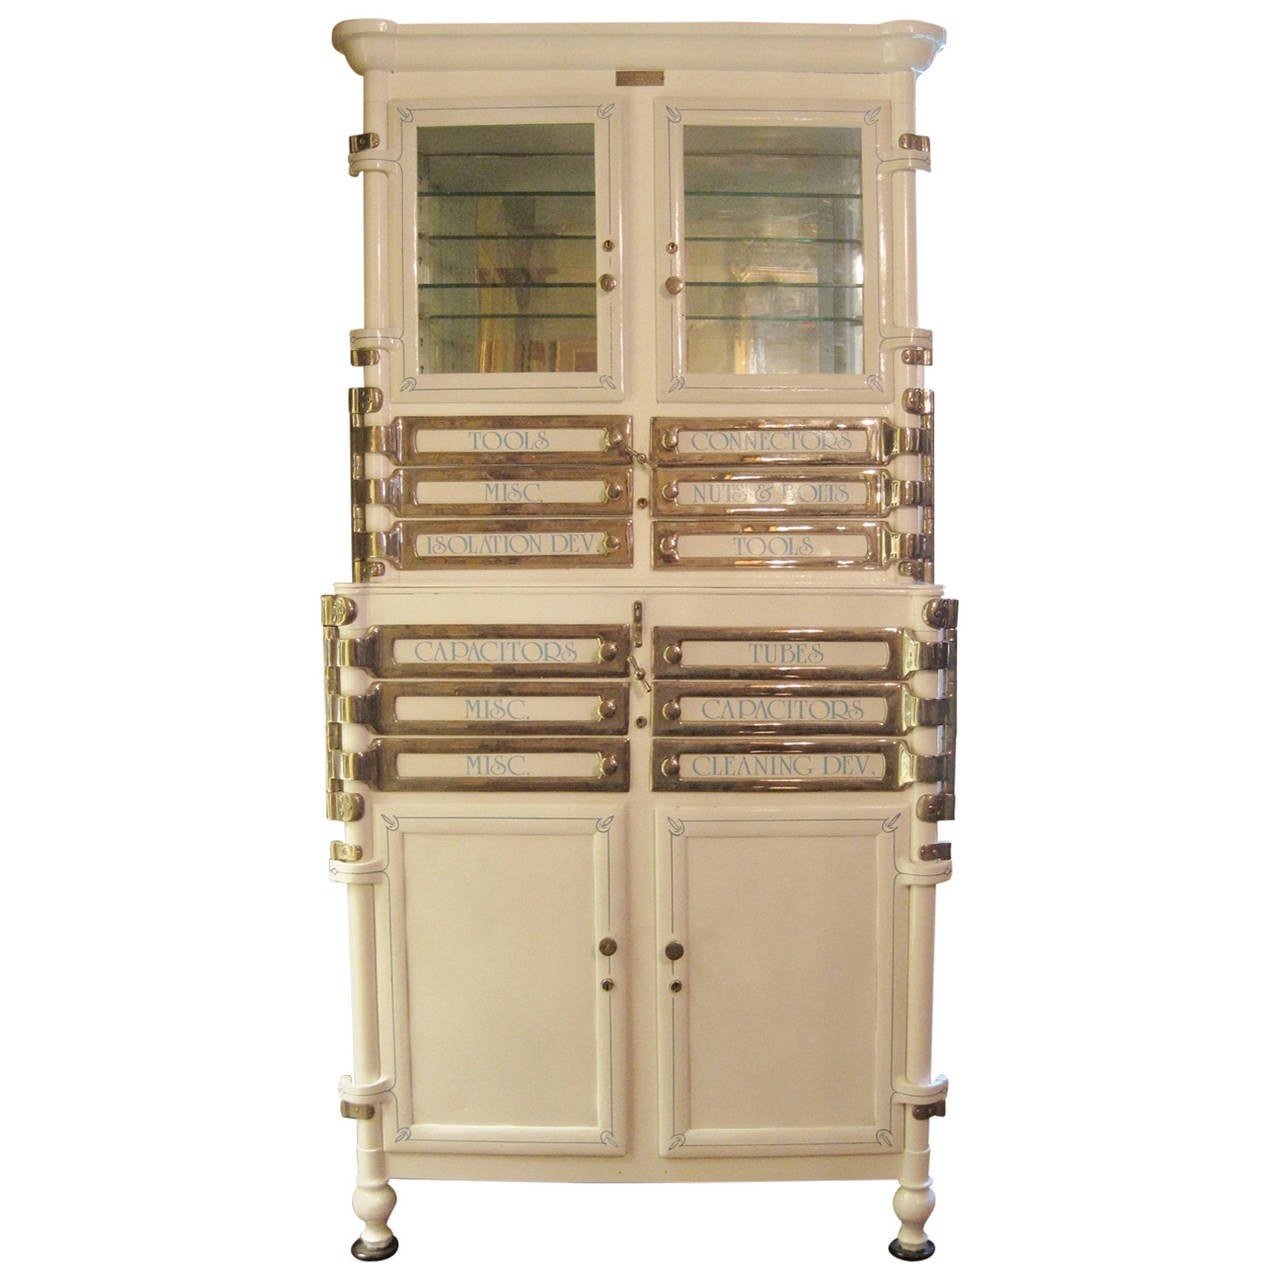 Aseptic Dental Cabinet, circa 1920s For Sale at 1stdibs